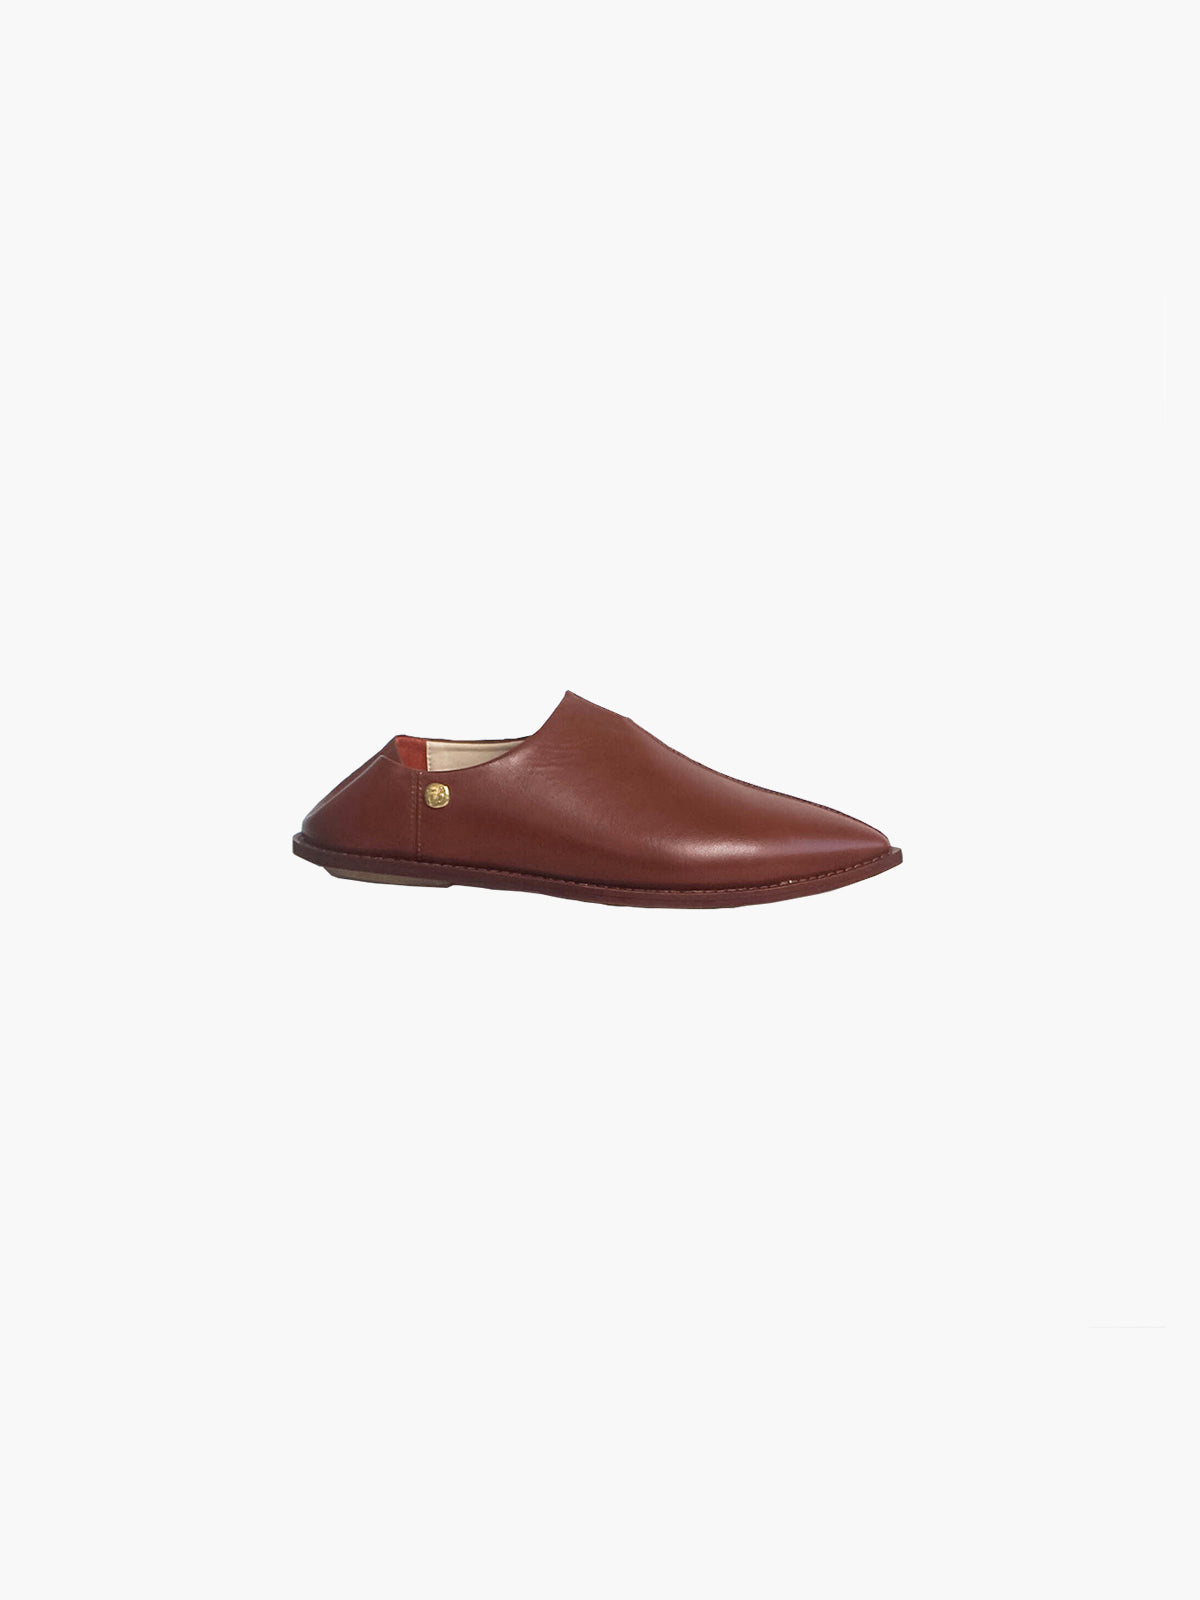 The Talitha | Saddle